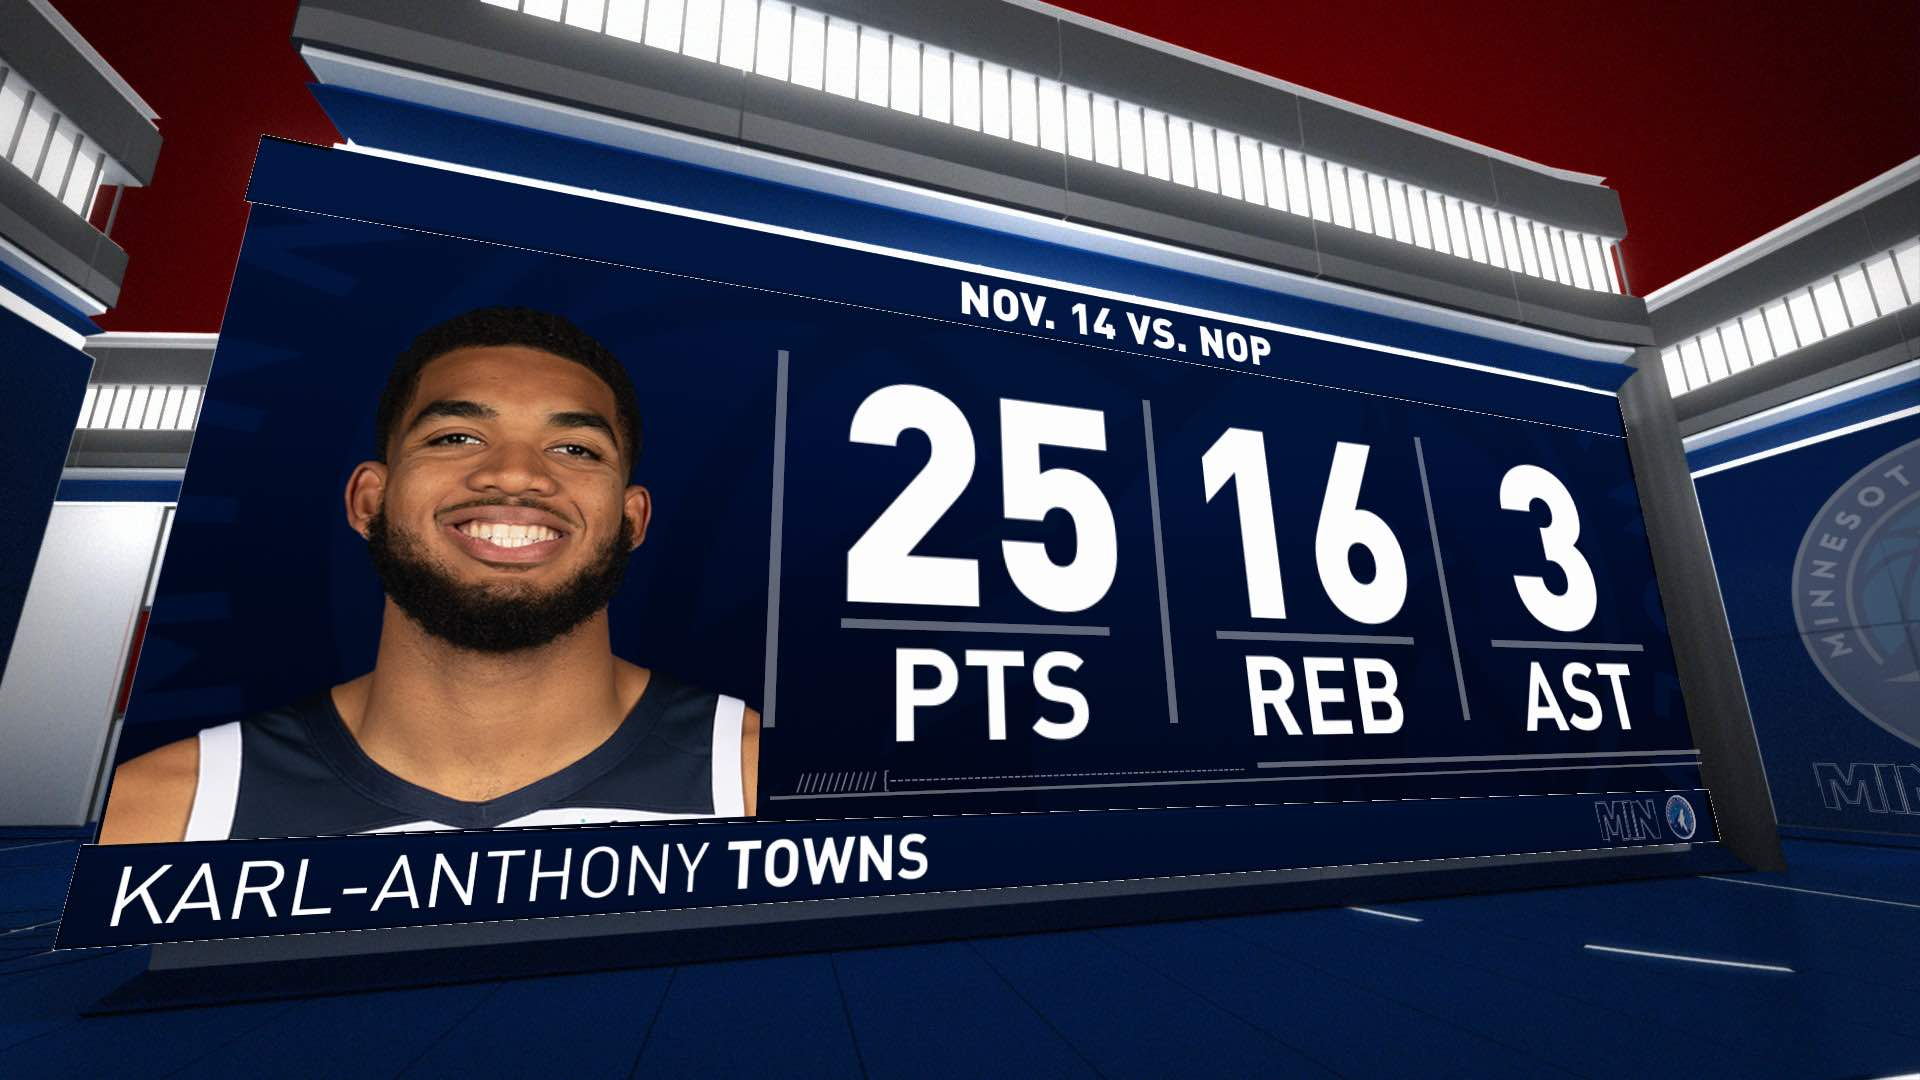 Karl-Anthony Towns Scores 25 Points vs. Pelicans